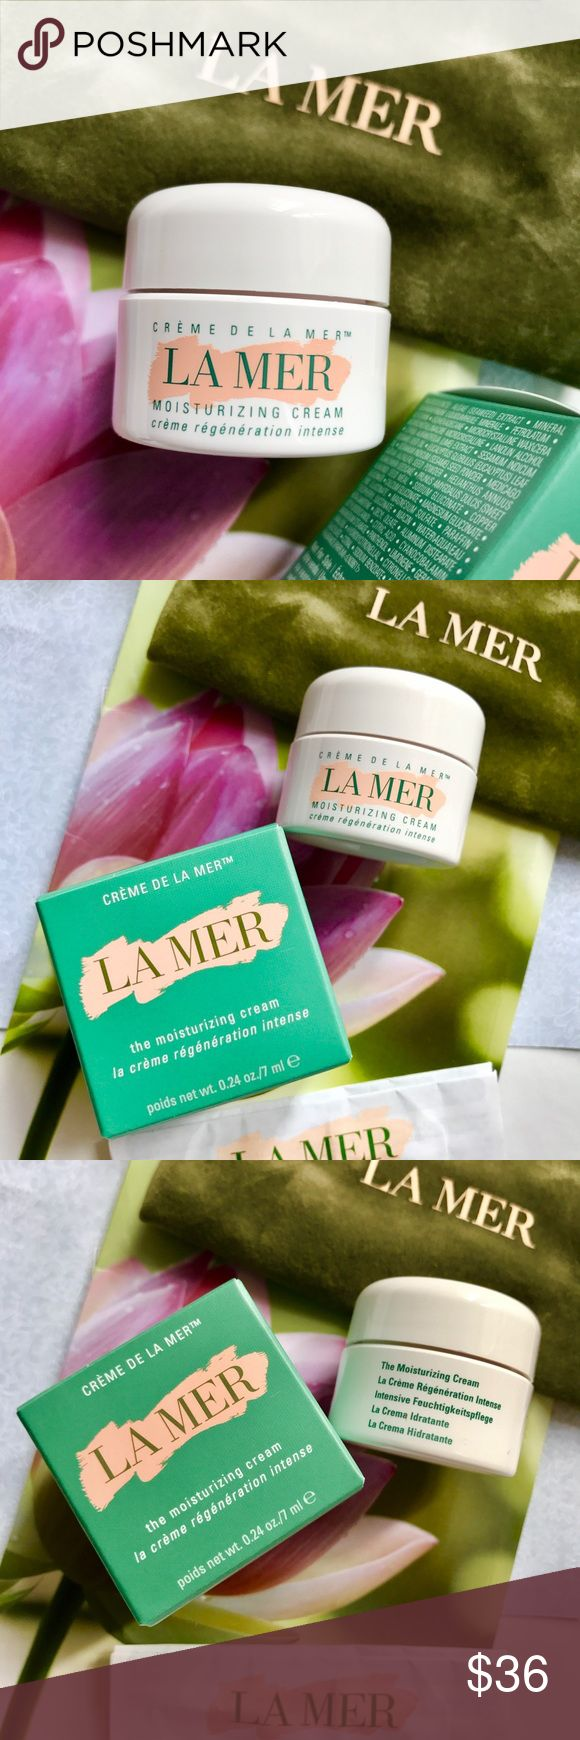 💜 La Mer Crème de la Mer Moisturizing Cream NEW💌 Perfect to try before committing to full size. Note item → size ← before purchasing. No trades. You will receive the following:  ❤︎ New  ❤︎ Unused  ❤︎ Authentic  ❤︎ Unopened   La Mer Crème de la Mer Moisturizing Cream Instructions included in box Size: 0.24 oz / 7 ml Batch code: DB6  This decadent cream transforms skin with an ultra-rich, dewy finish.   Even the driest complexions are renewed with the coveted Crème de la Mer.   ●●NOT●●…